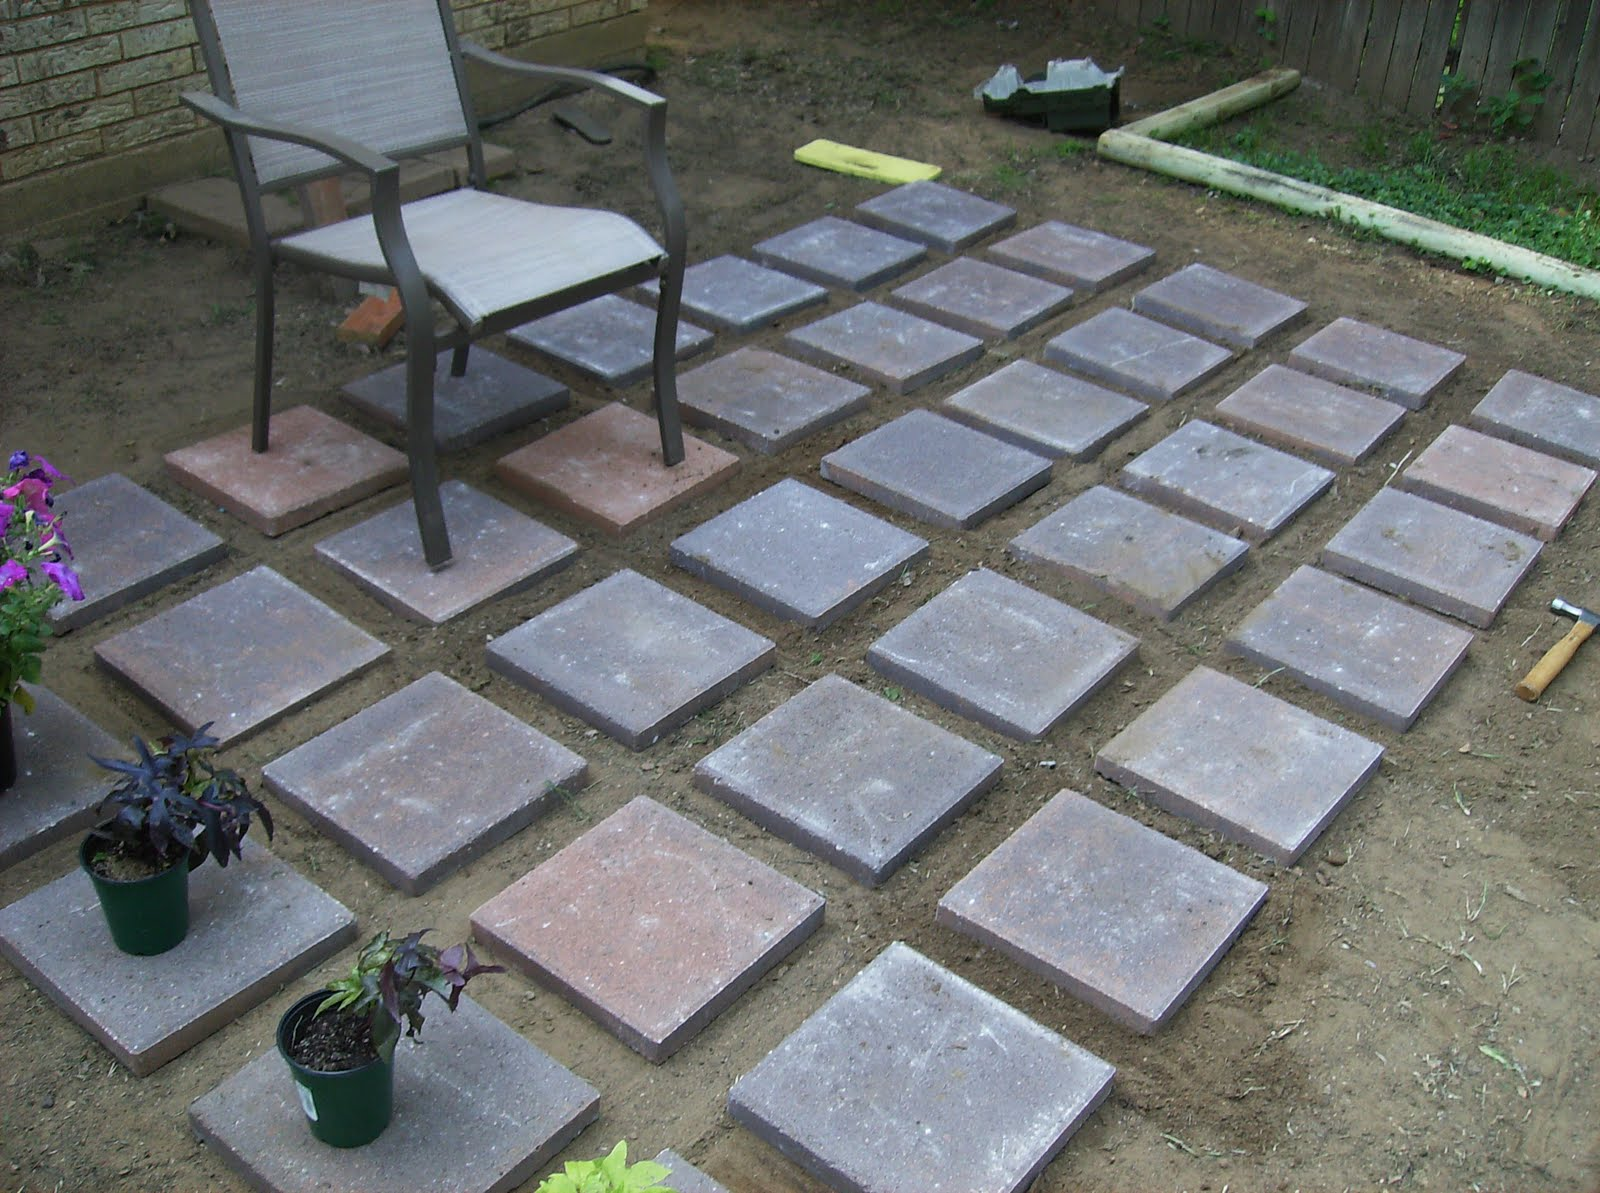 Diy Backyard Oasis Large Patio Pavers Support Blog For Moms Of BOYS